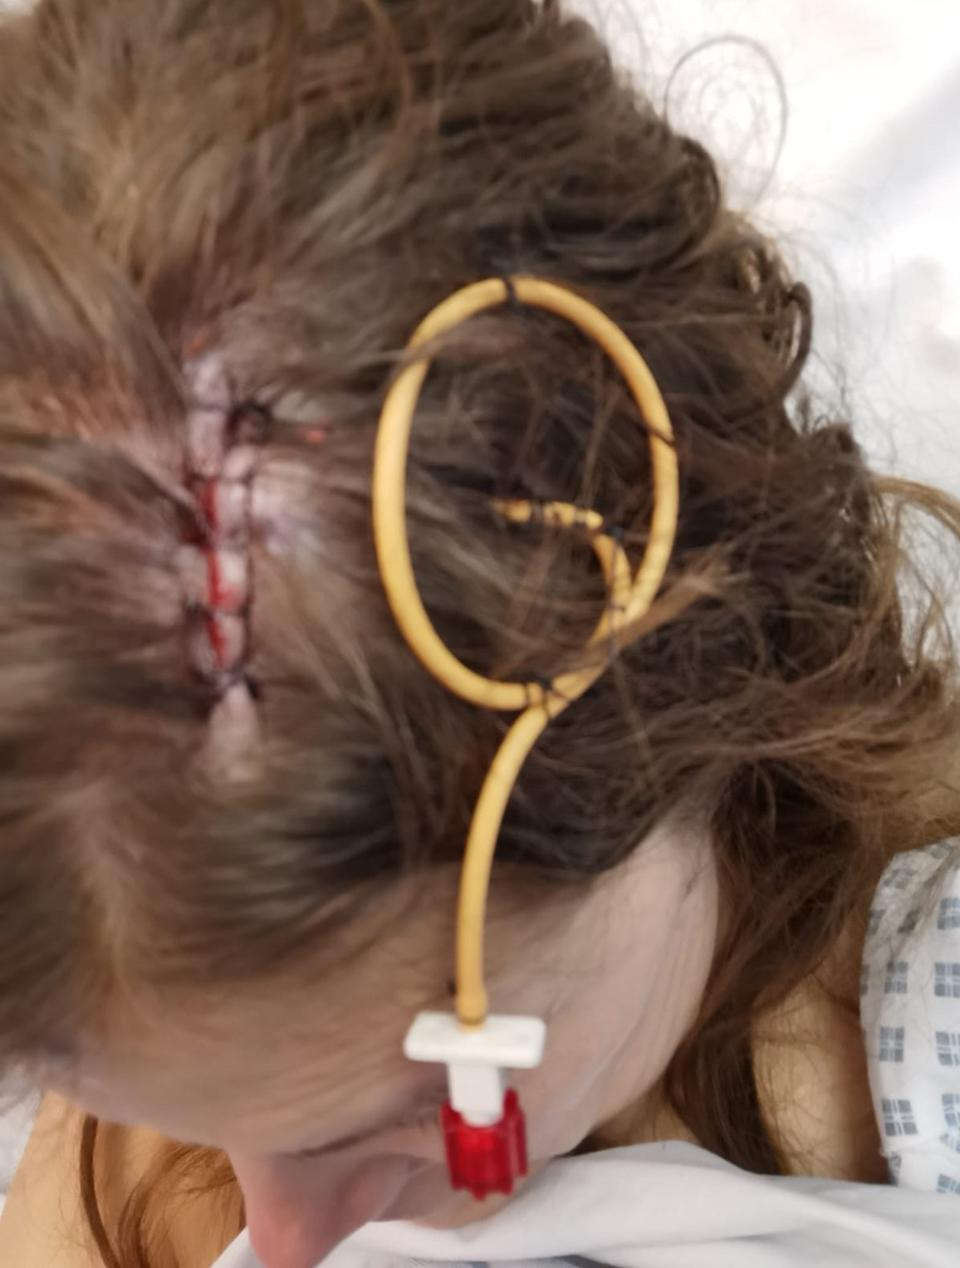 Rebecca had holes drilled into her skull to drain the fluid from her brain. (PA Real Life)